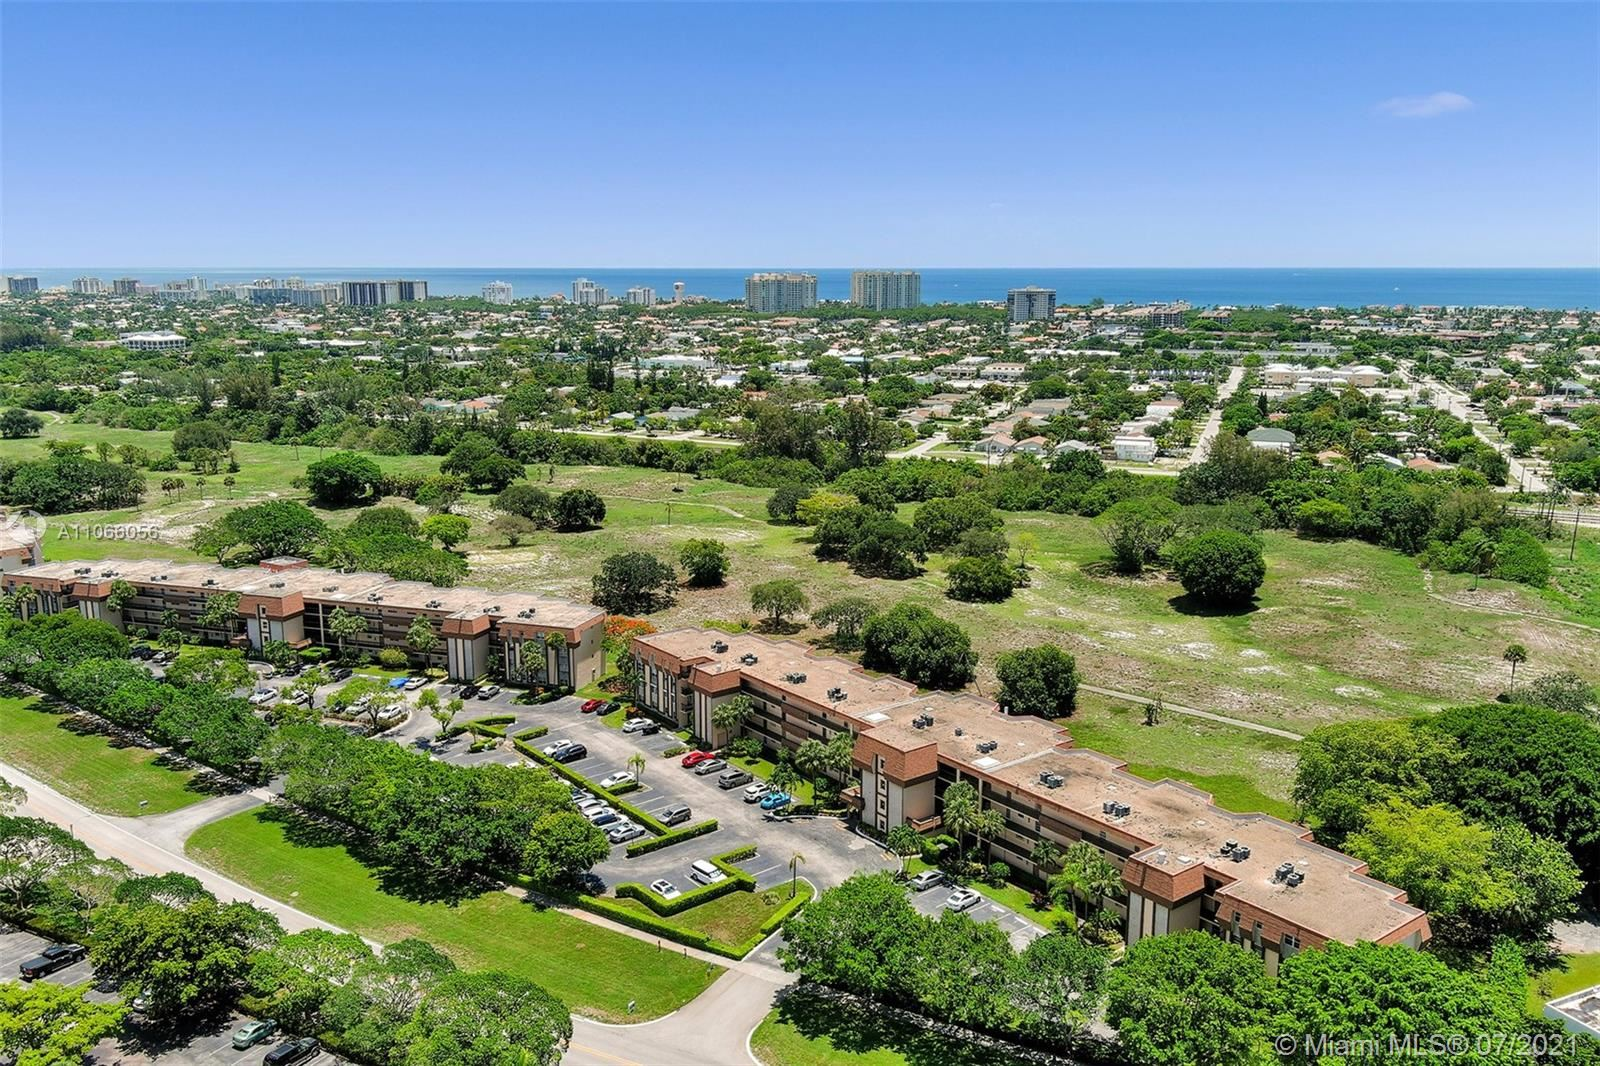 6000 NW 2nd Ave #337, Boca Raton, FL 33487 - #: A11066056